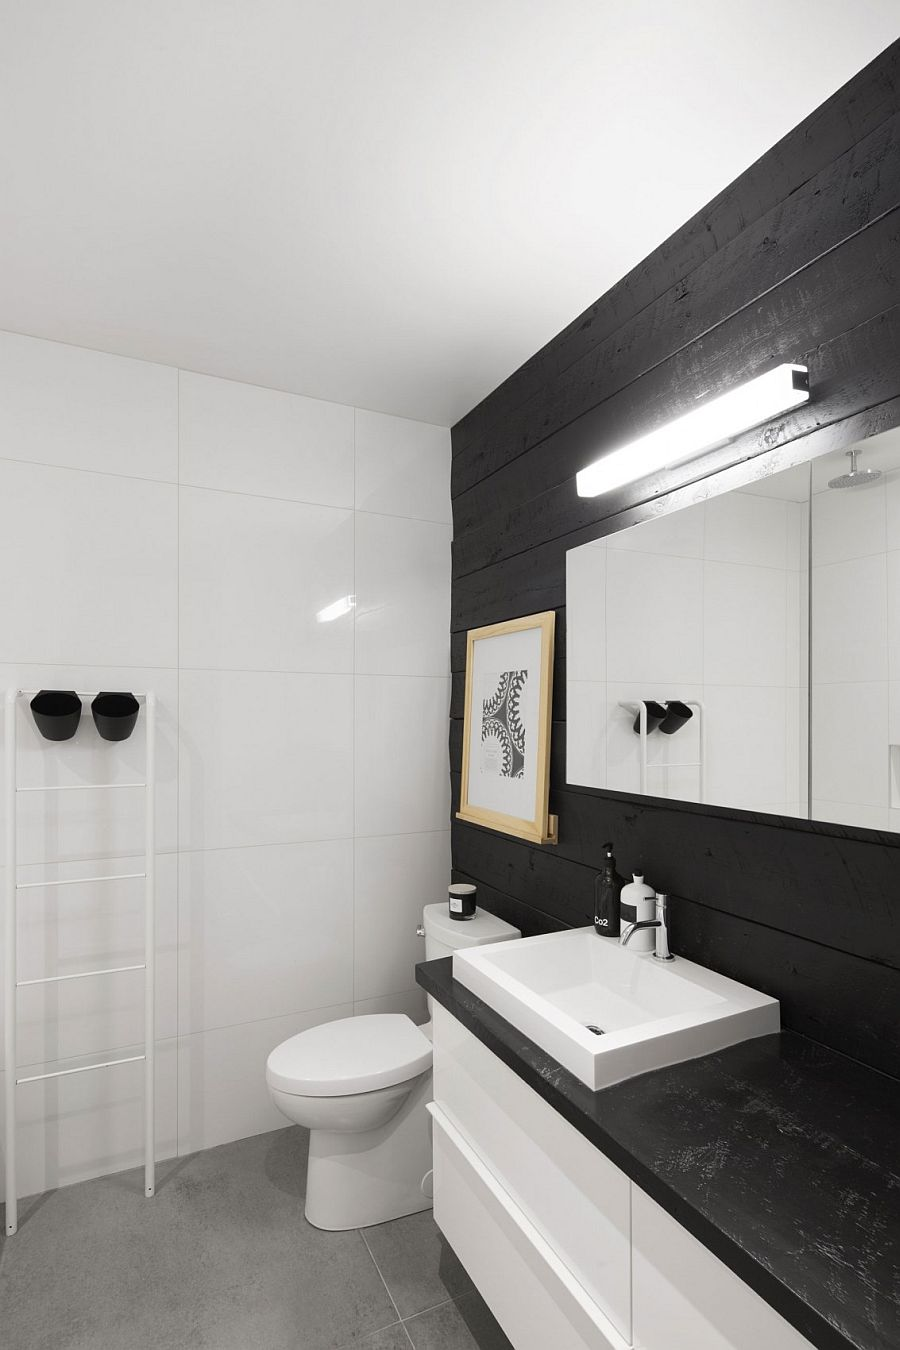 Dark wooden boards add visual contrast to the bathroom